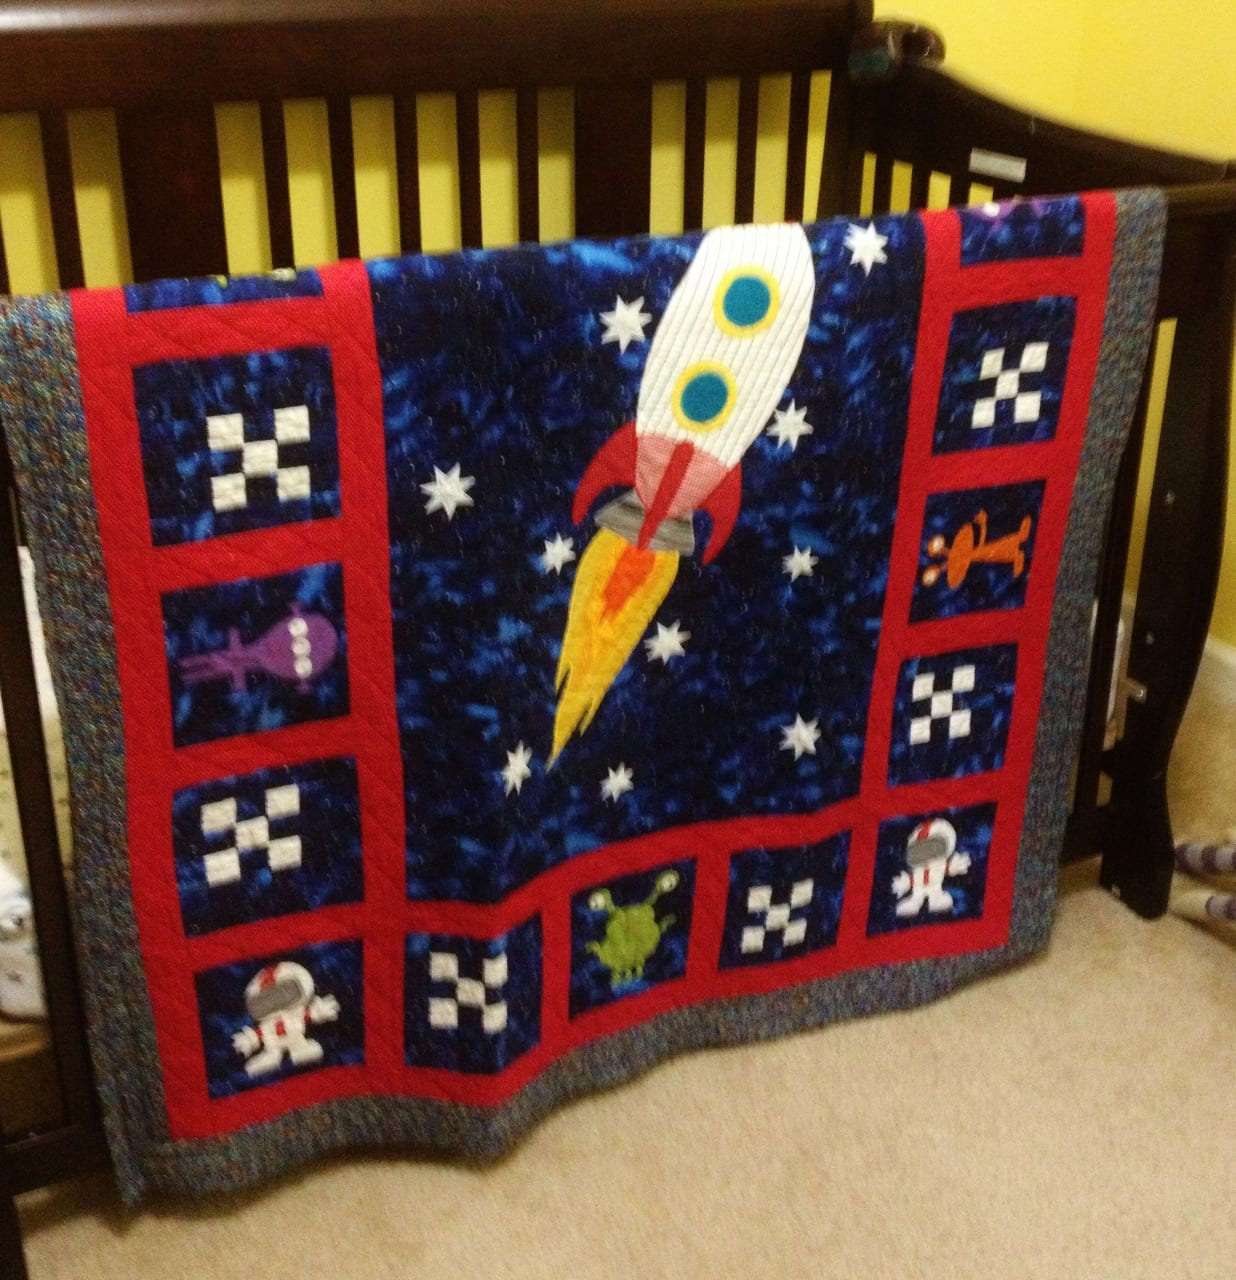 outer space theme quilt